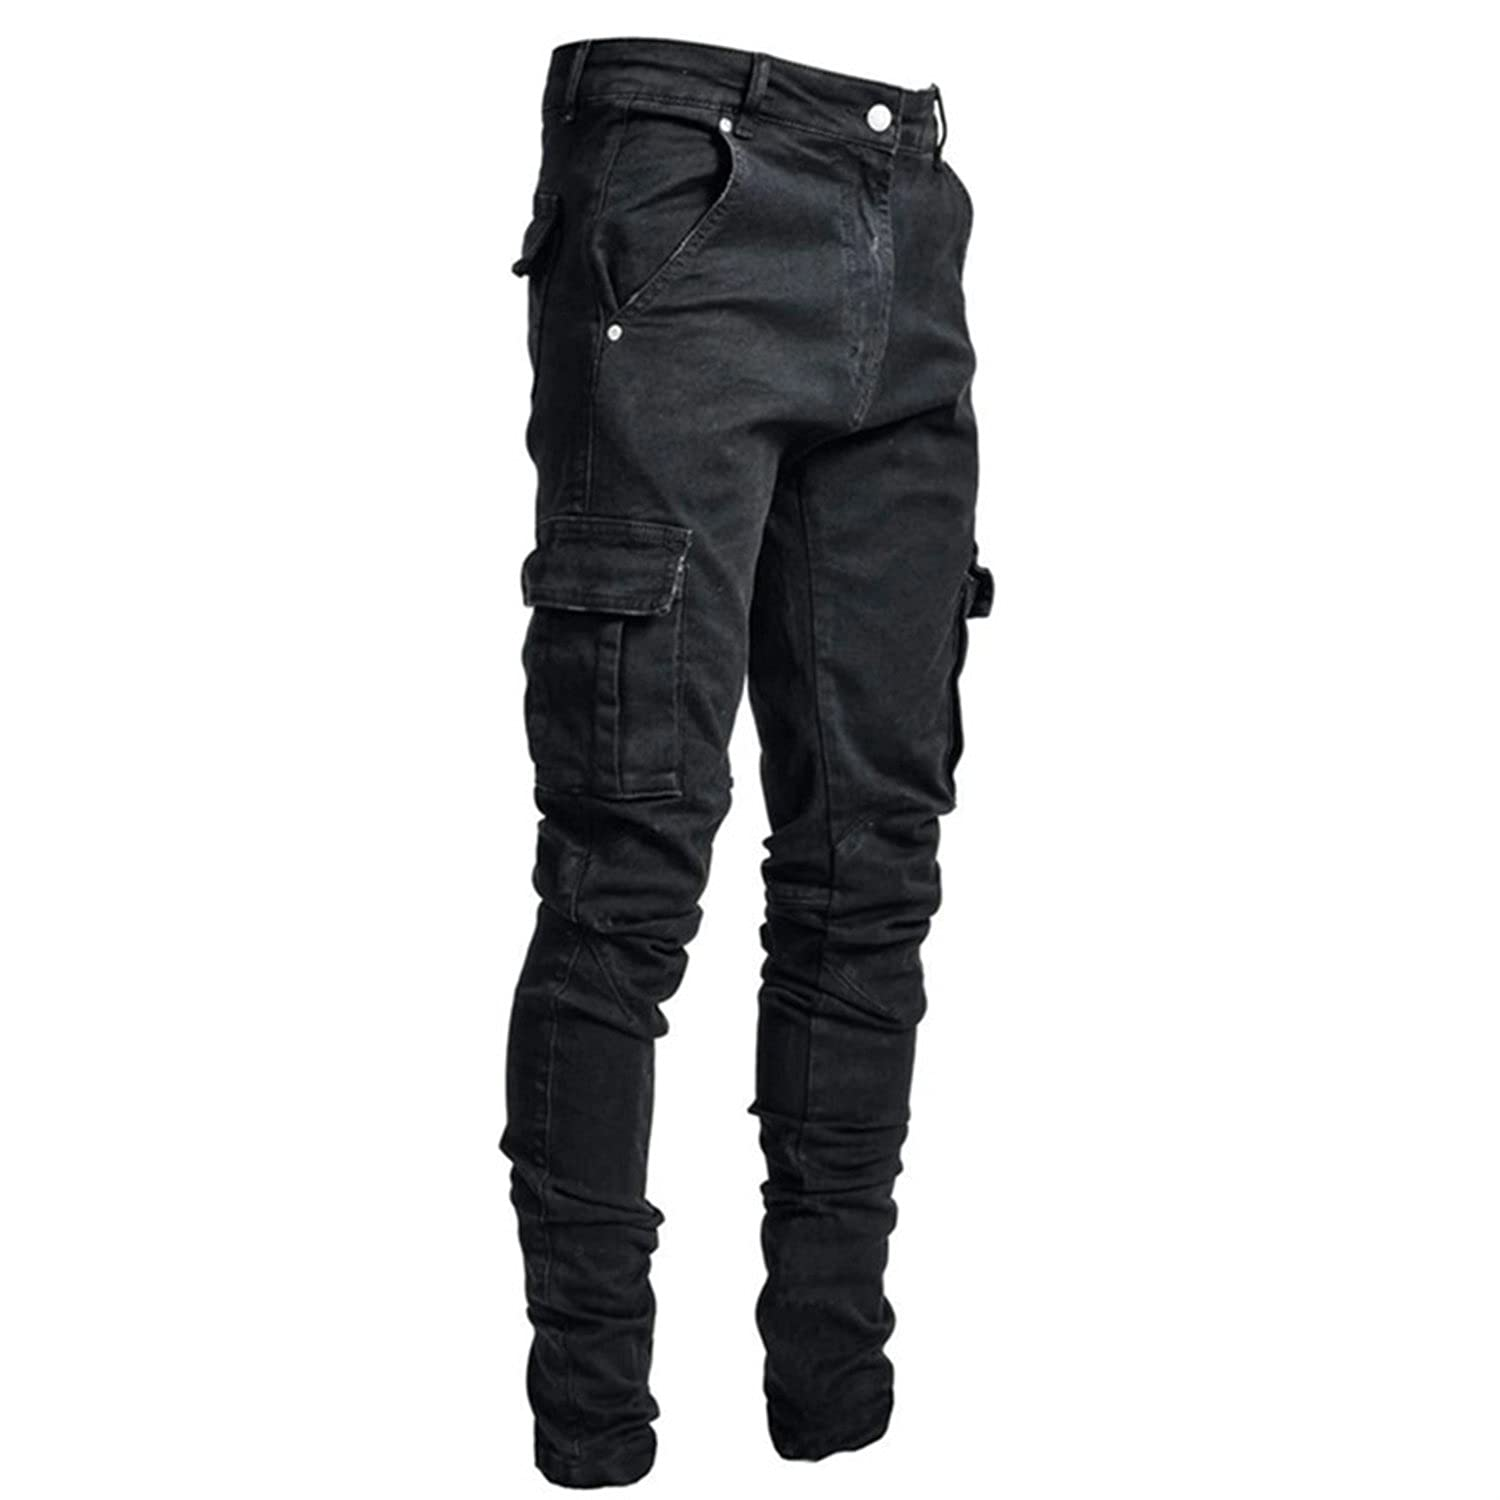 Clearance SALE! Limited time! Mens Slim Fit Pockets Stretch Gifts Skinny But Pant Pants Cotton Cargo